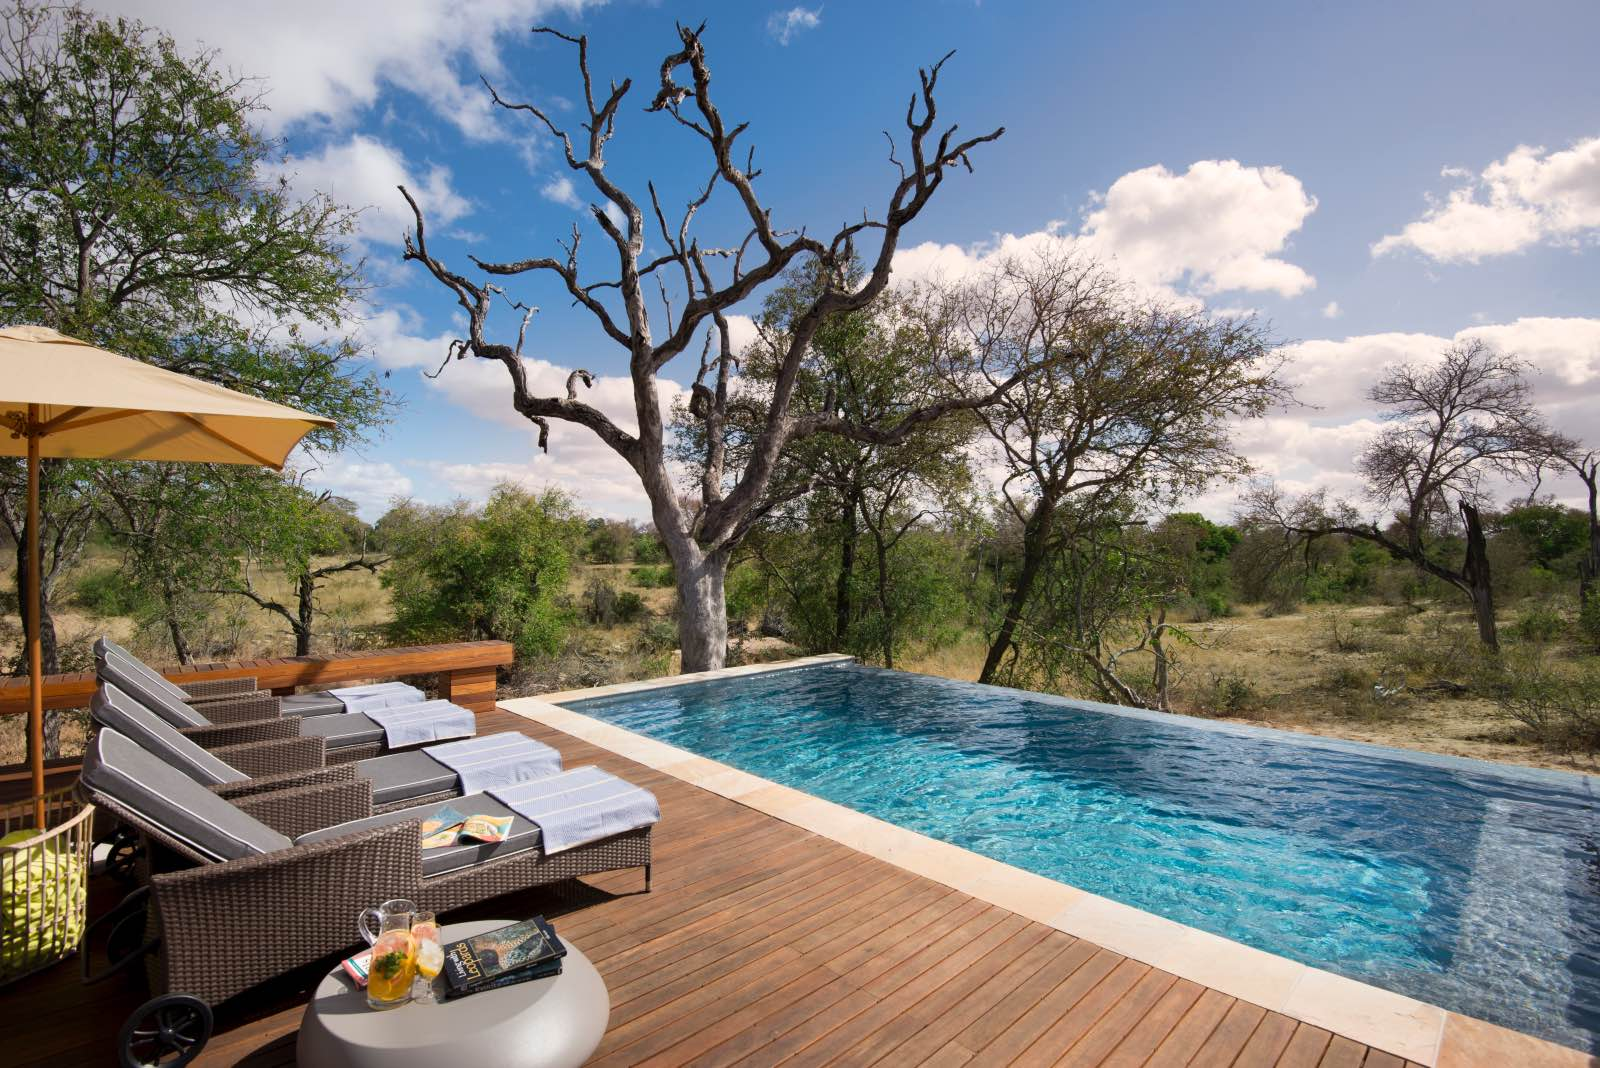 The rim flow pool and sun loungers looking onto the bush